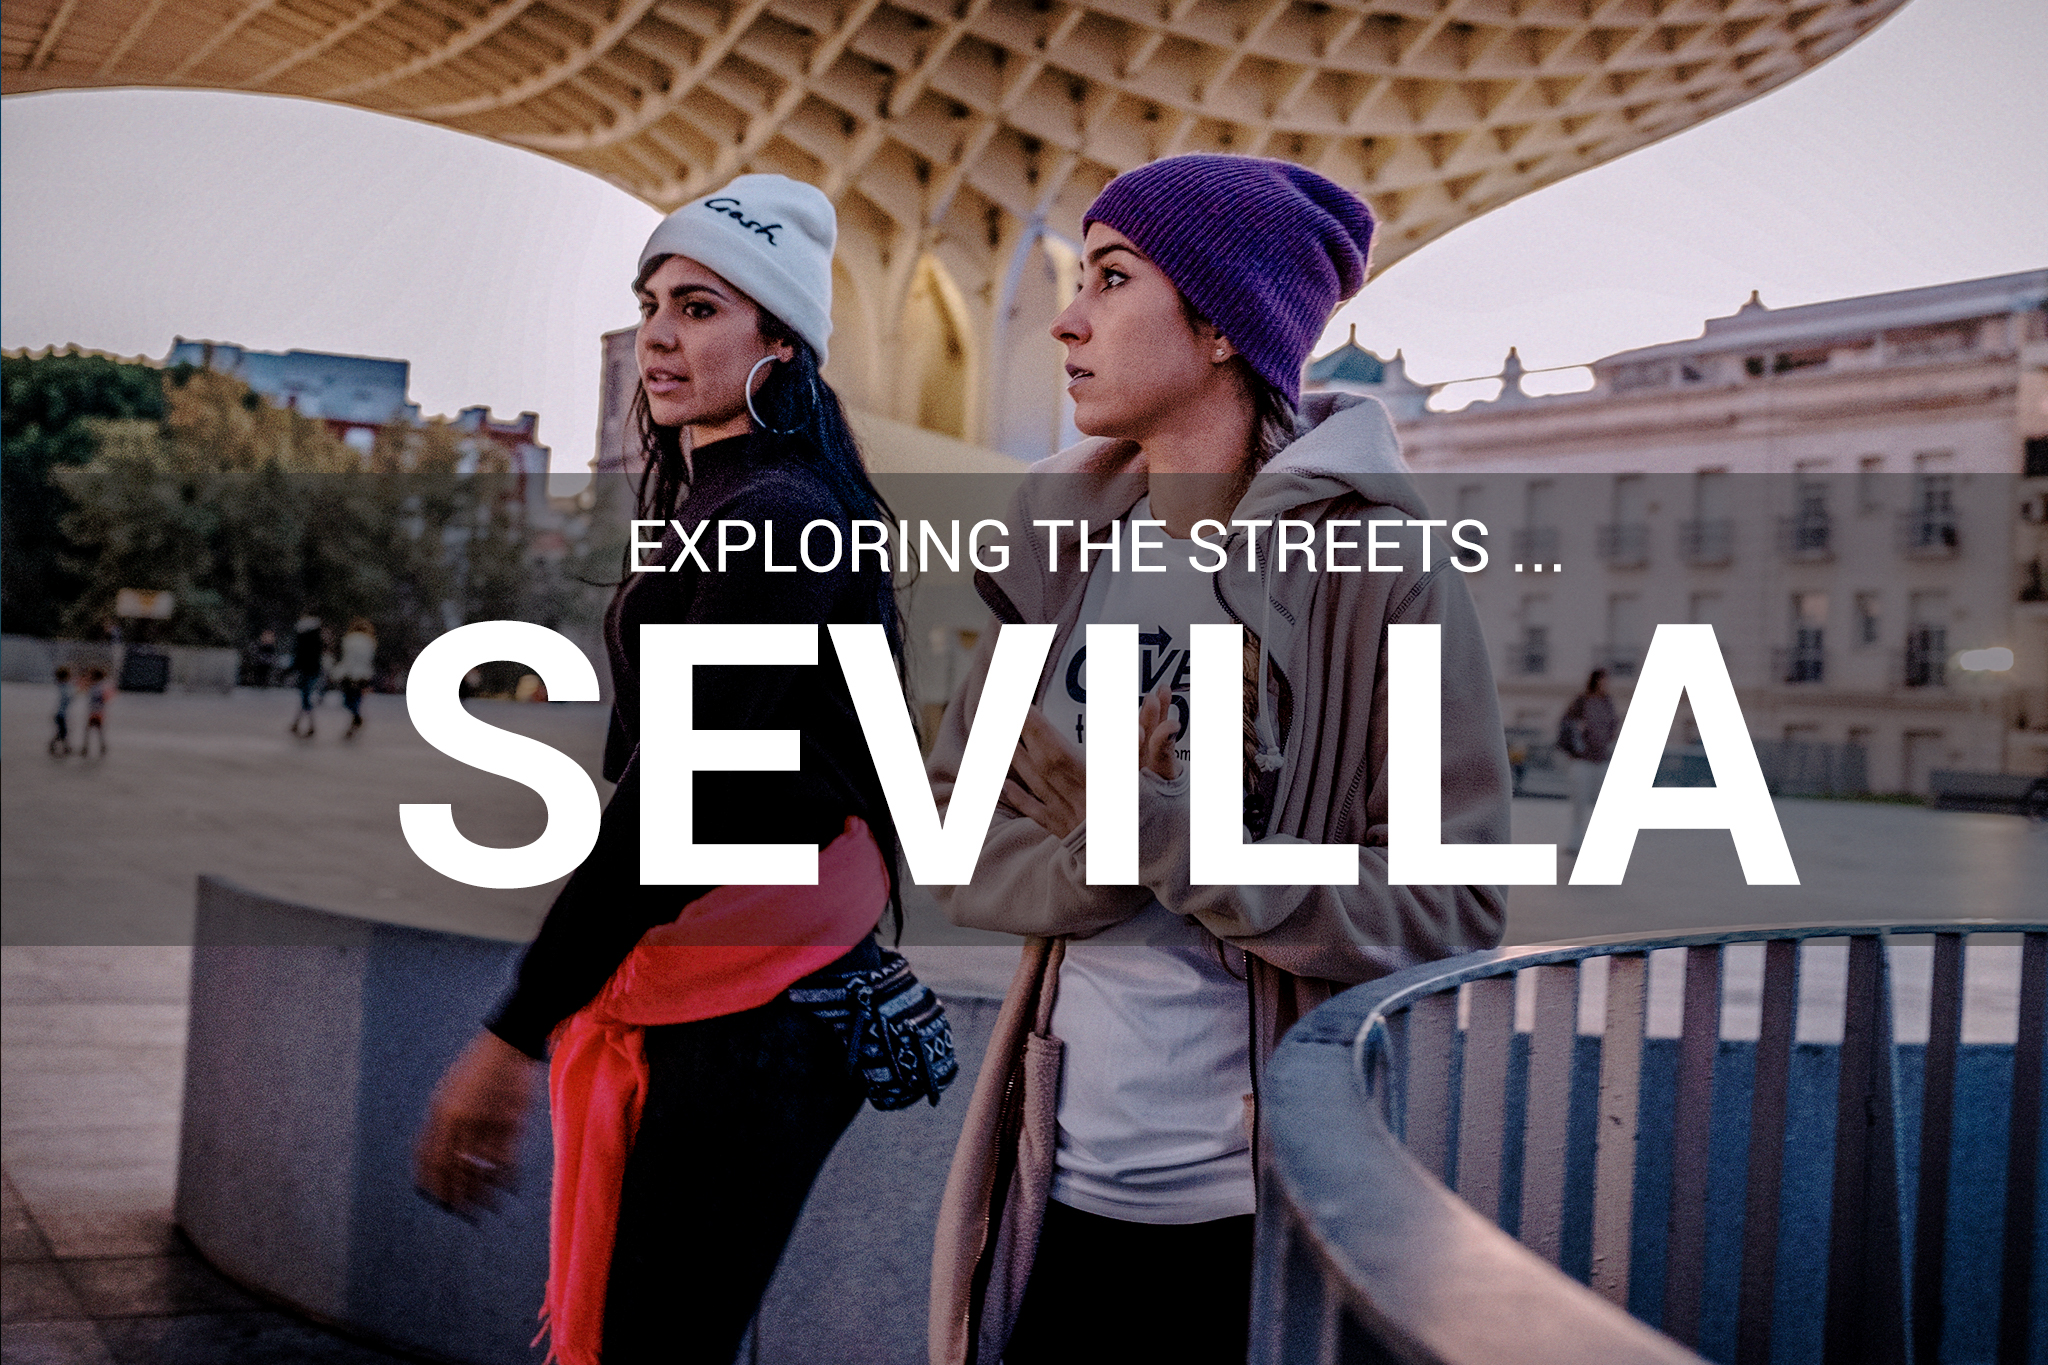 SEVILLA___Exploring the streets ---2015 ---